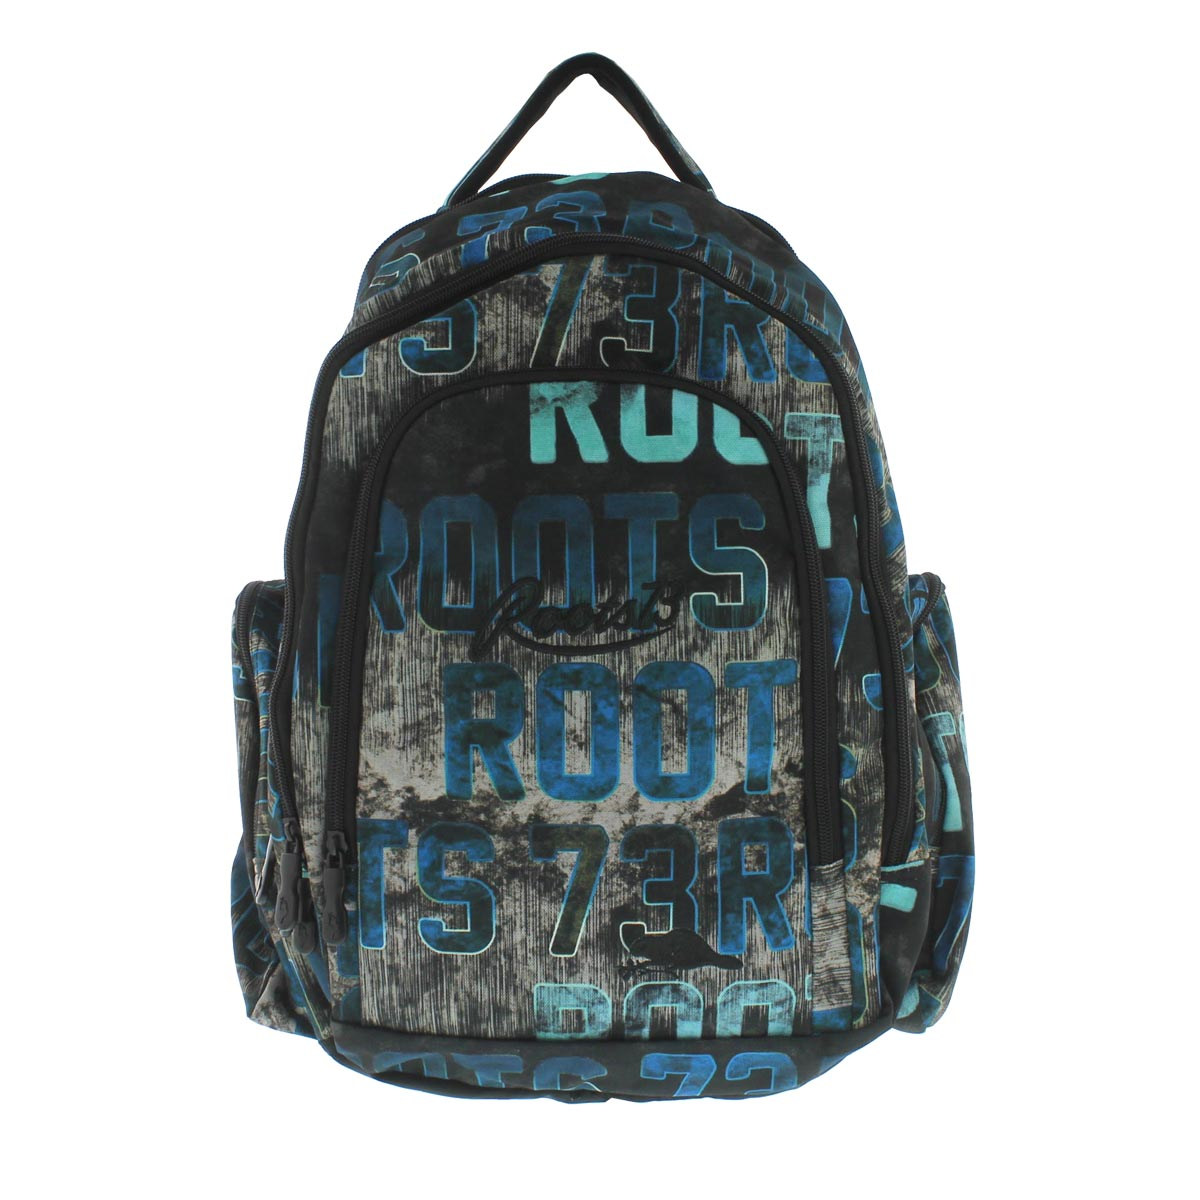 Unisex Roots73 blue print backpack